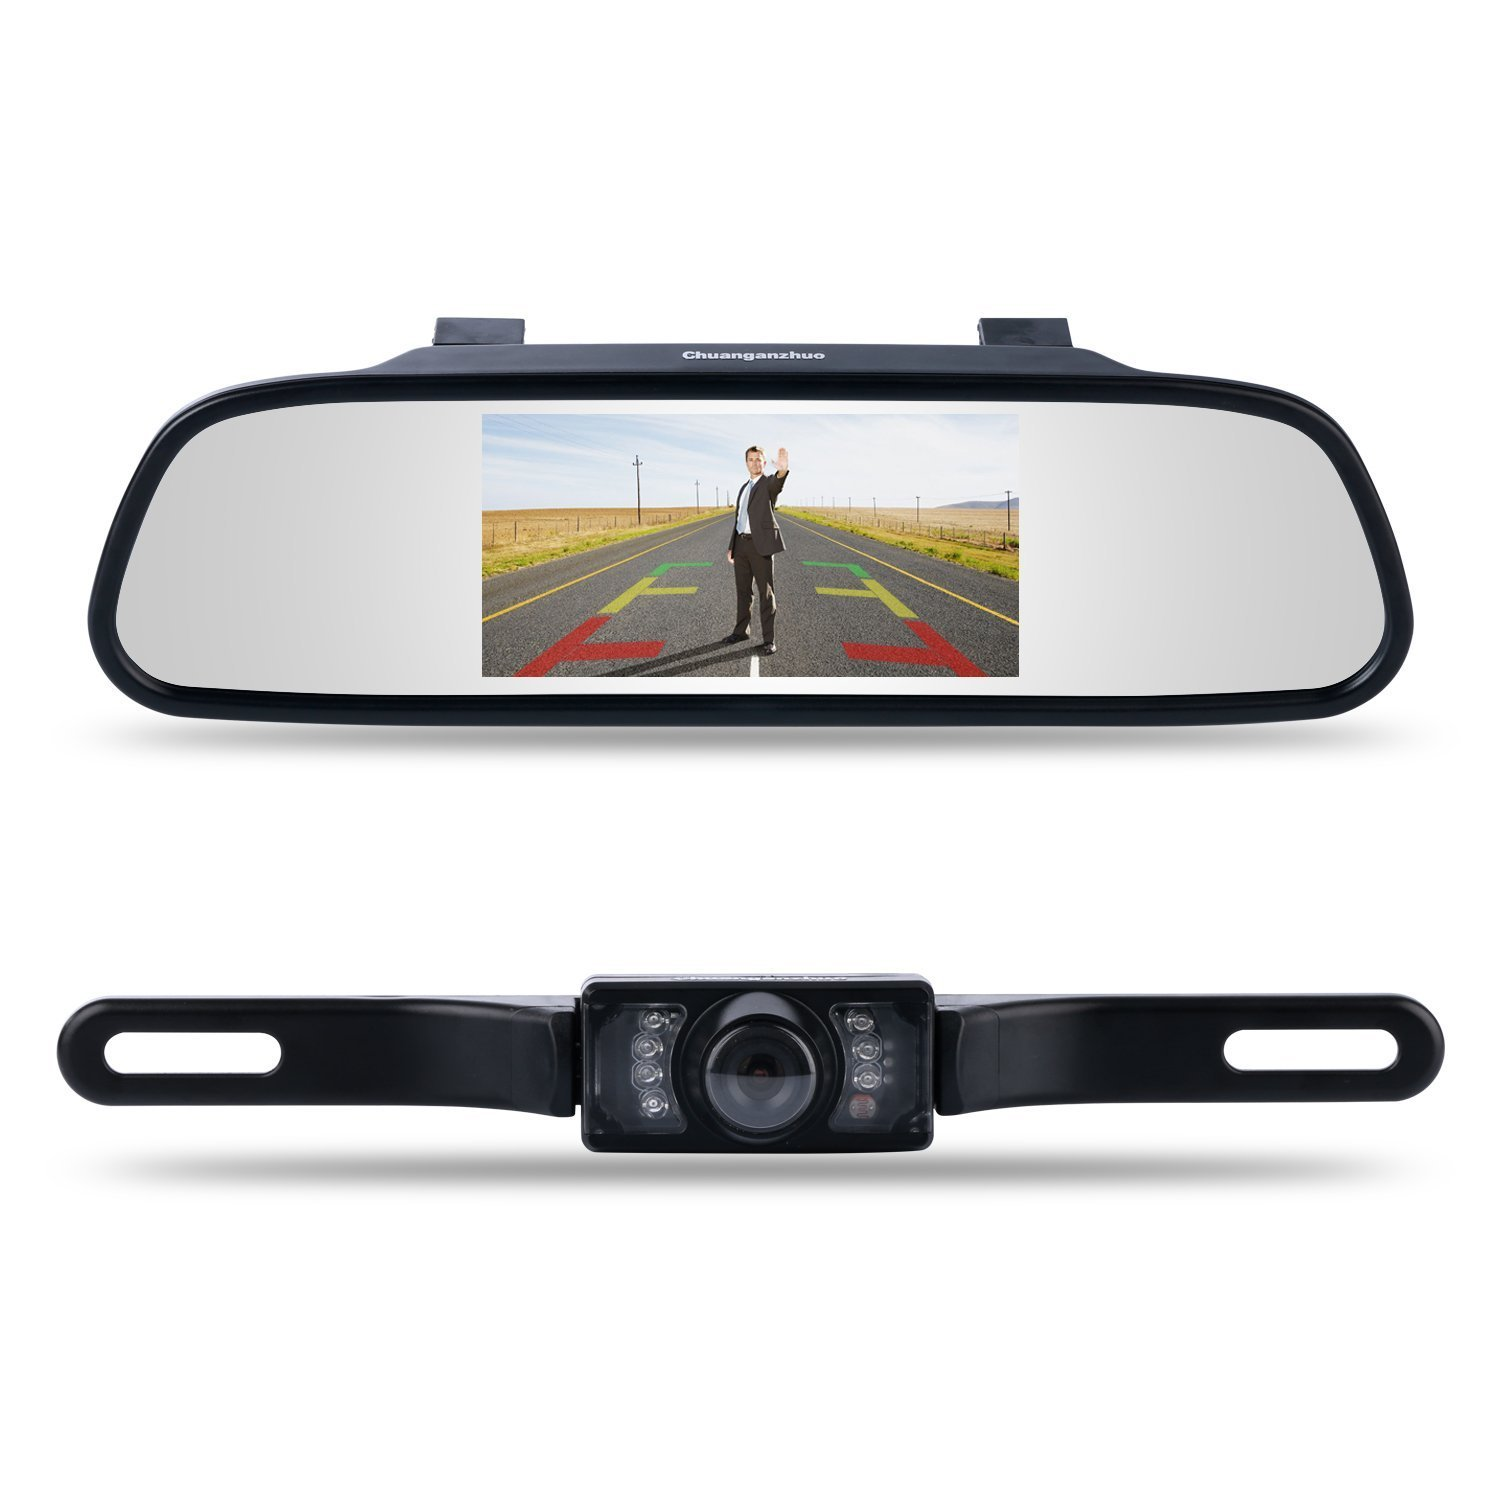 Chuanganzhuo 4332965129 4.3'' Mirror Monitor for DVD/VCR/Car Reverse Camera + CMOS Parking Camera with 7 Led Night Vision Backup Camera and Monitor Kit Pack by Chuanganzhuo